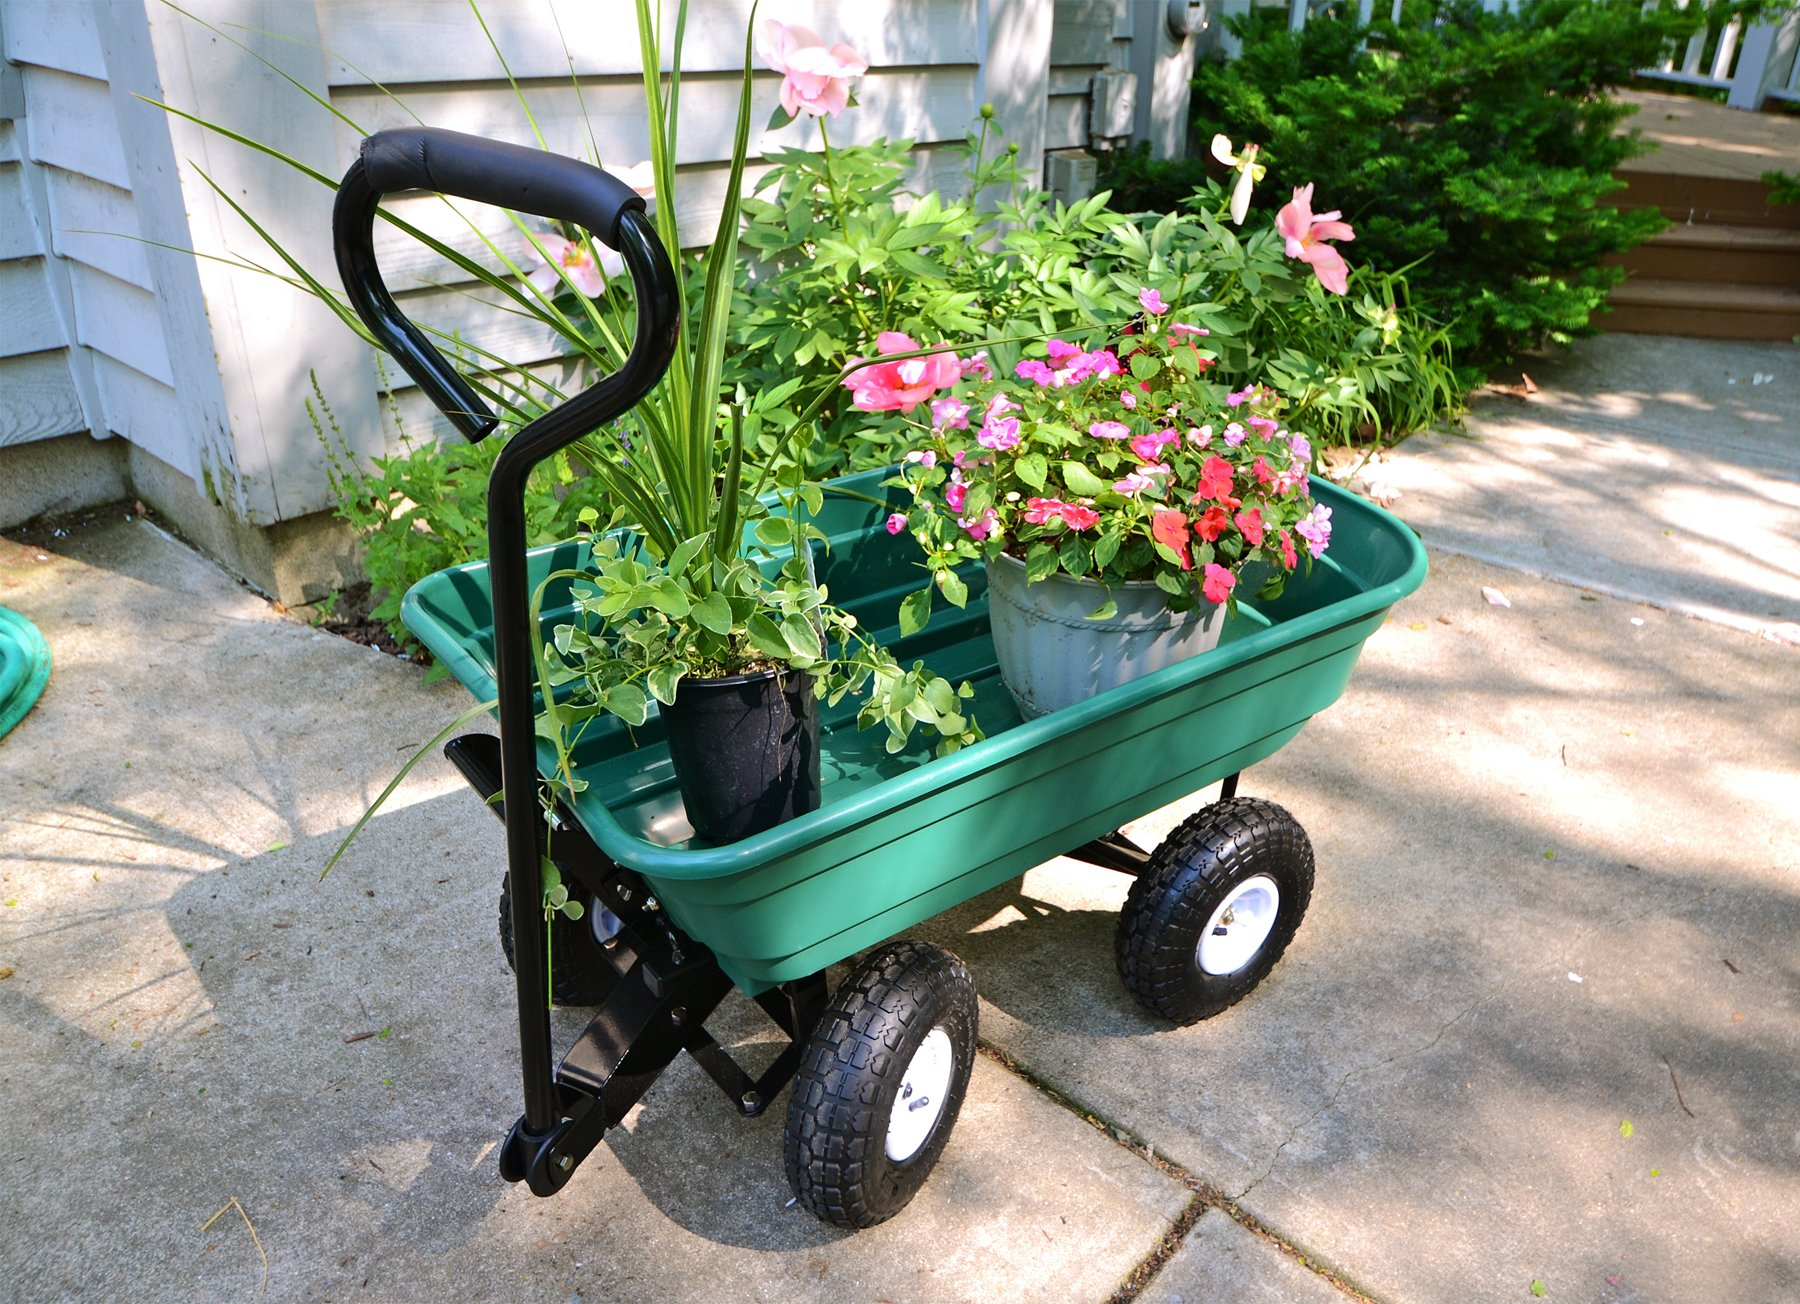 Precision LC2000 Capacity Mighty Garden Yard Cart, 600-Pound by Unknown (Image #4)